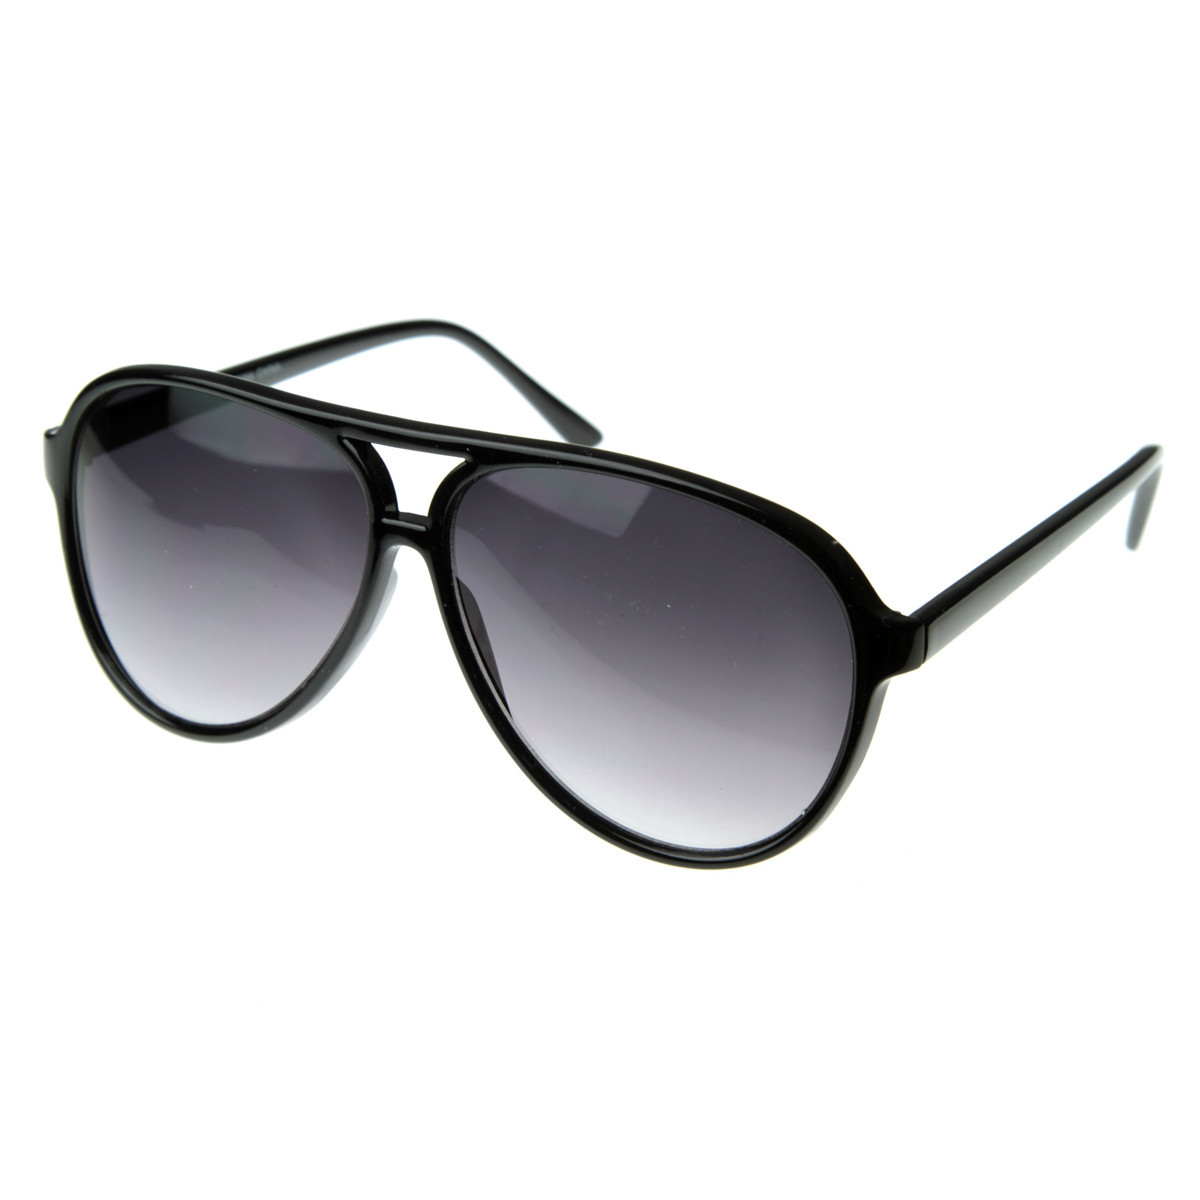 mens sunglasses aviators  Large Mens Retro 1980\u0027s Plastic Aviator Sunglasses 8249 - ZeroUV ...